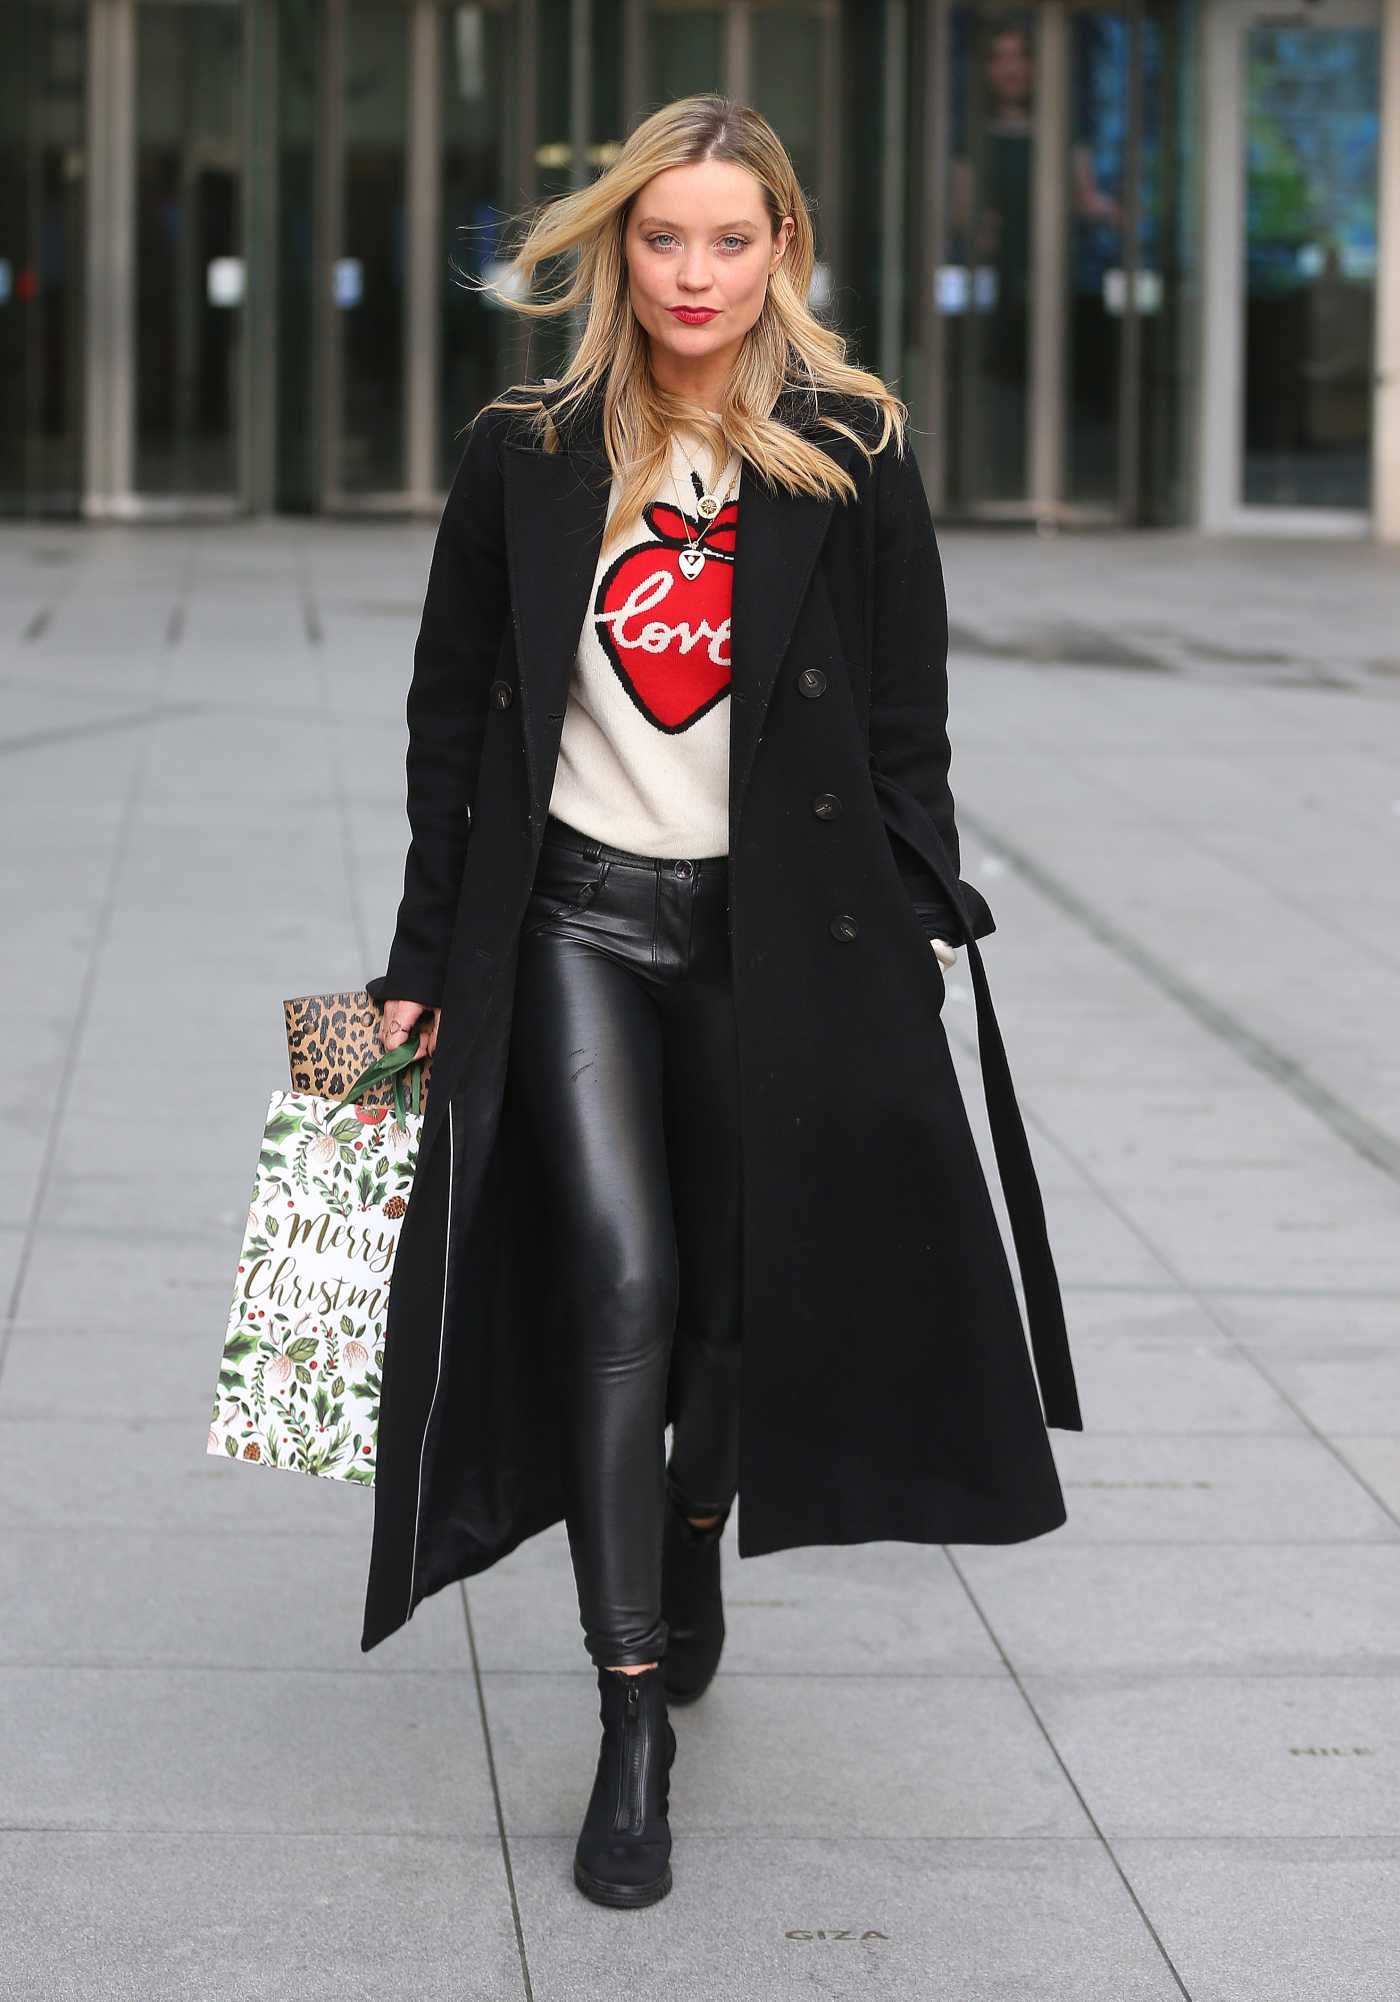 Laura Whitmore in a Black Coat Leaves BBC Radio in London 12/22/2019